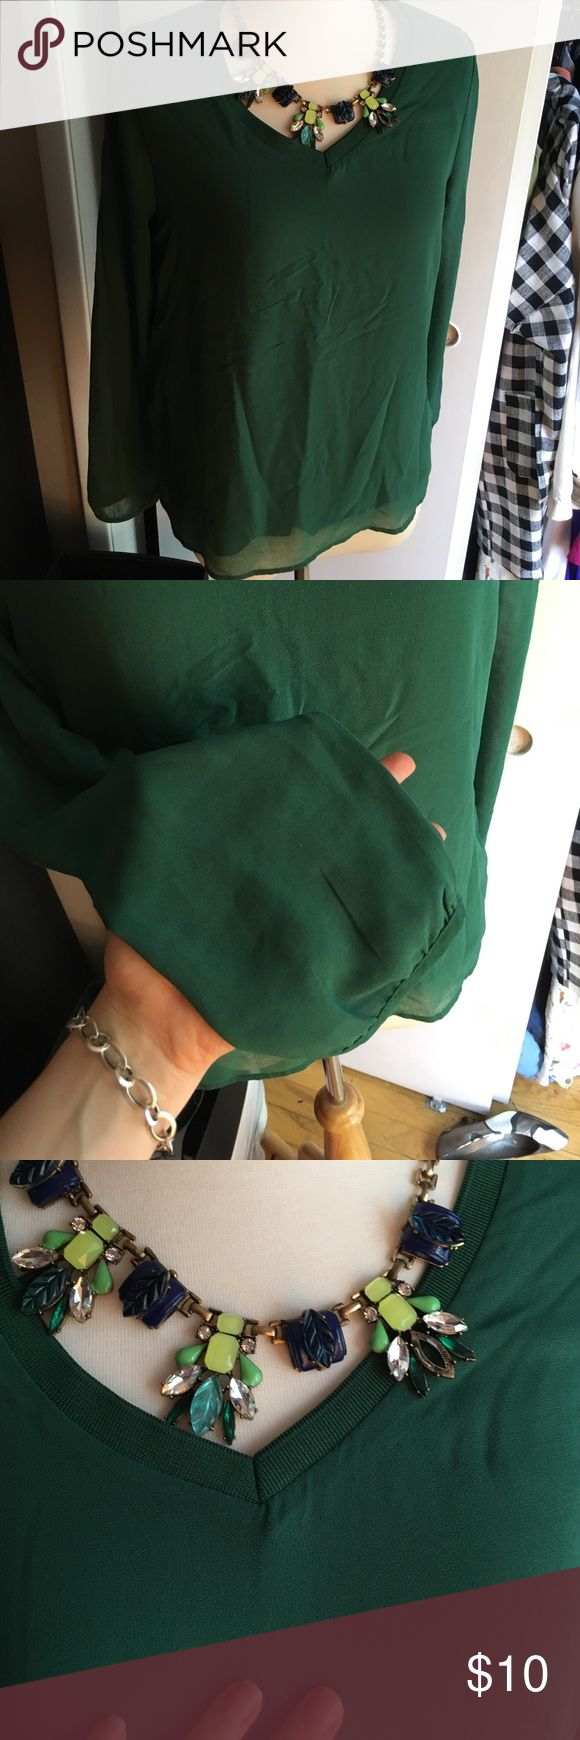 Nice green long sleeve top Lightweight but with lining, beautiful warm green mango top, perfect for any occasion Tops Blouses